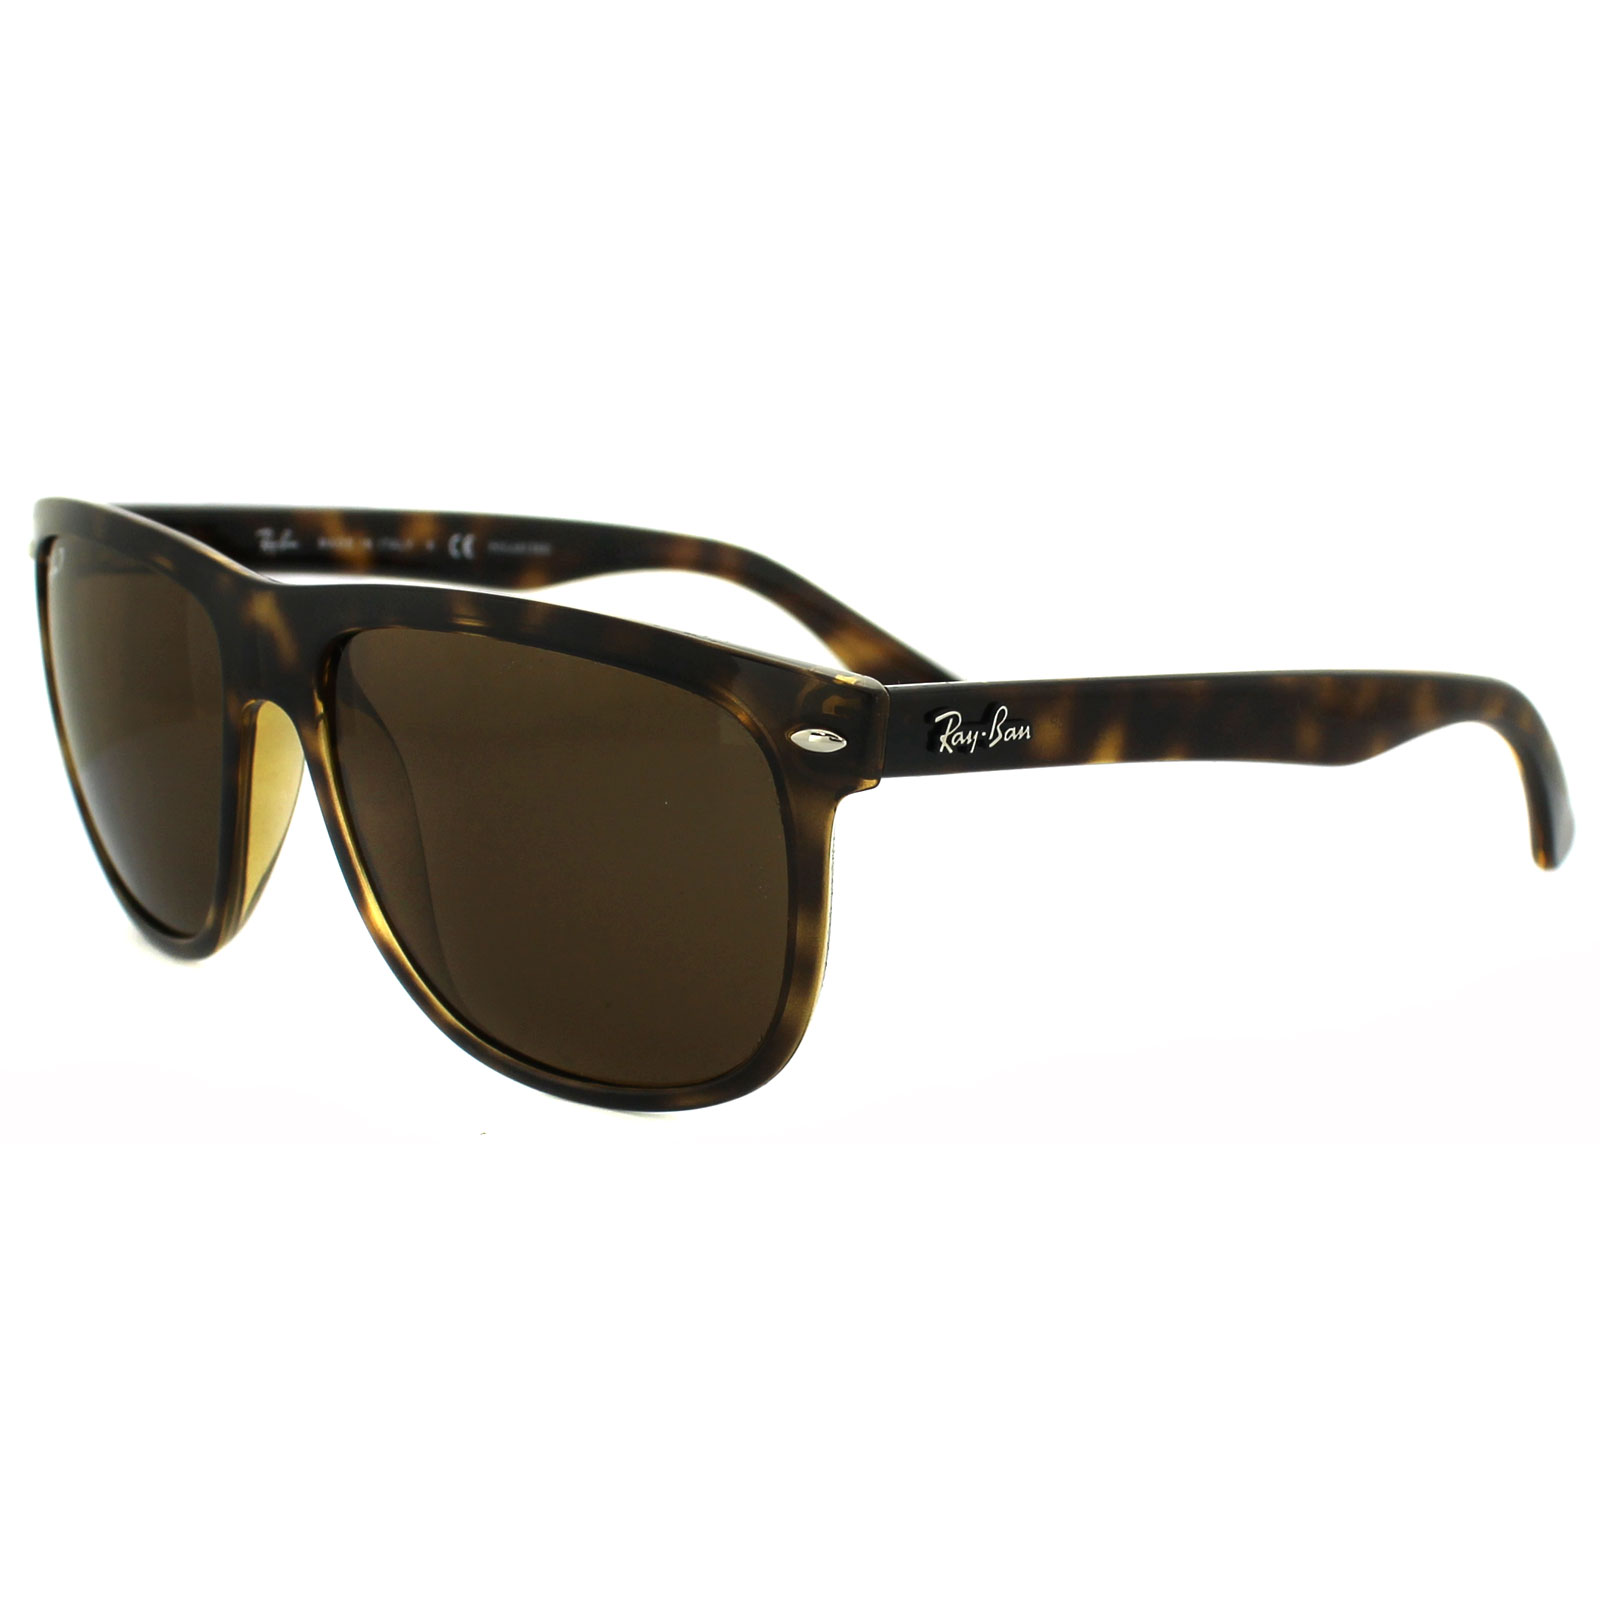 a444be2dd4 Sentinel Ray-Ban Sunglasses 4147 710 57 Tortoise Brown Polarized 60mm